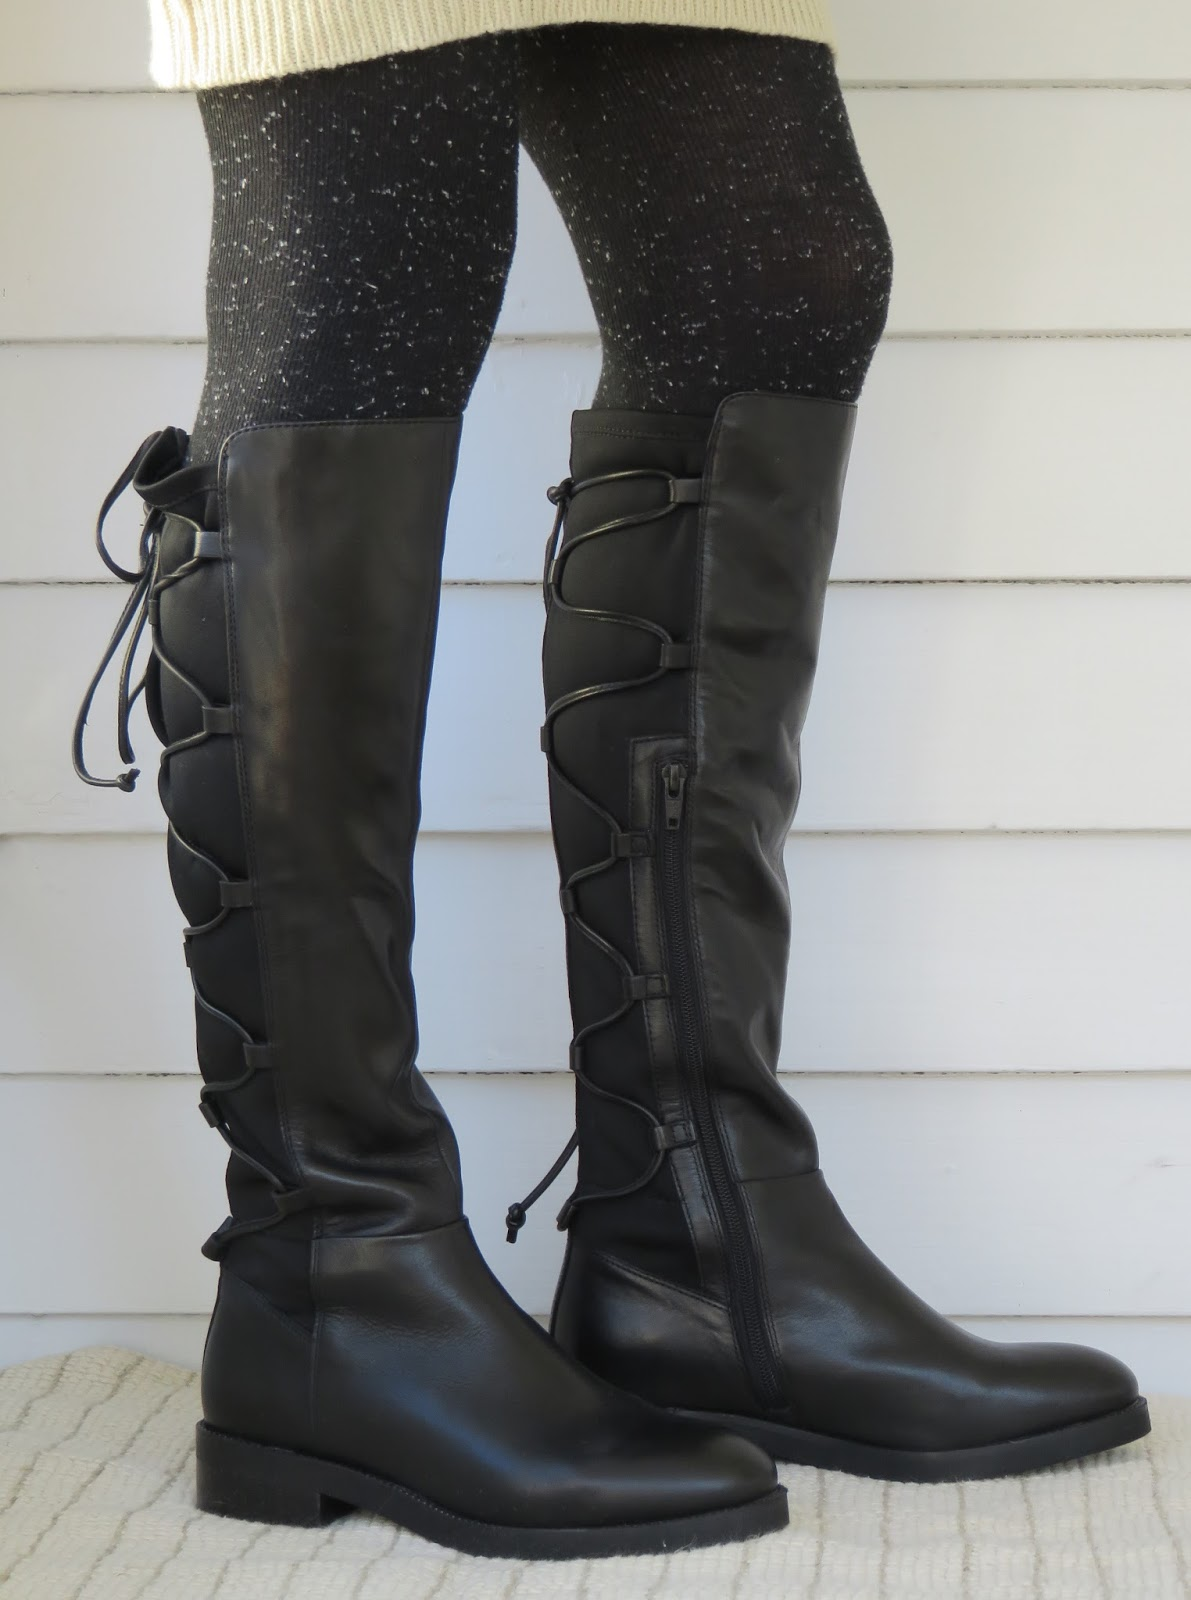 6d93192a22d This is a tall boot. In the size 7.5 I m wearing in these photos